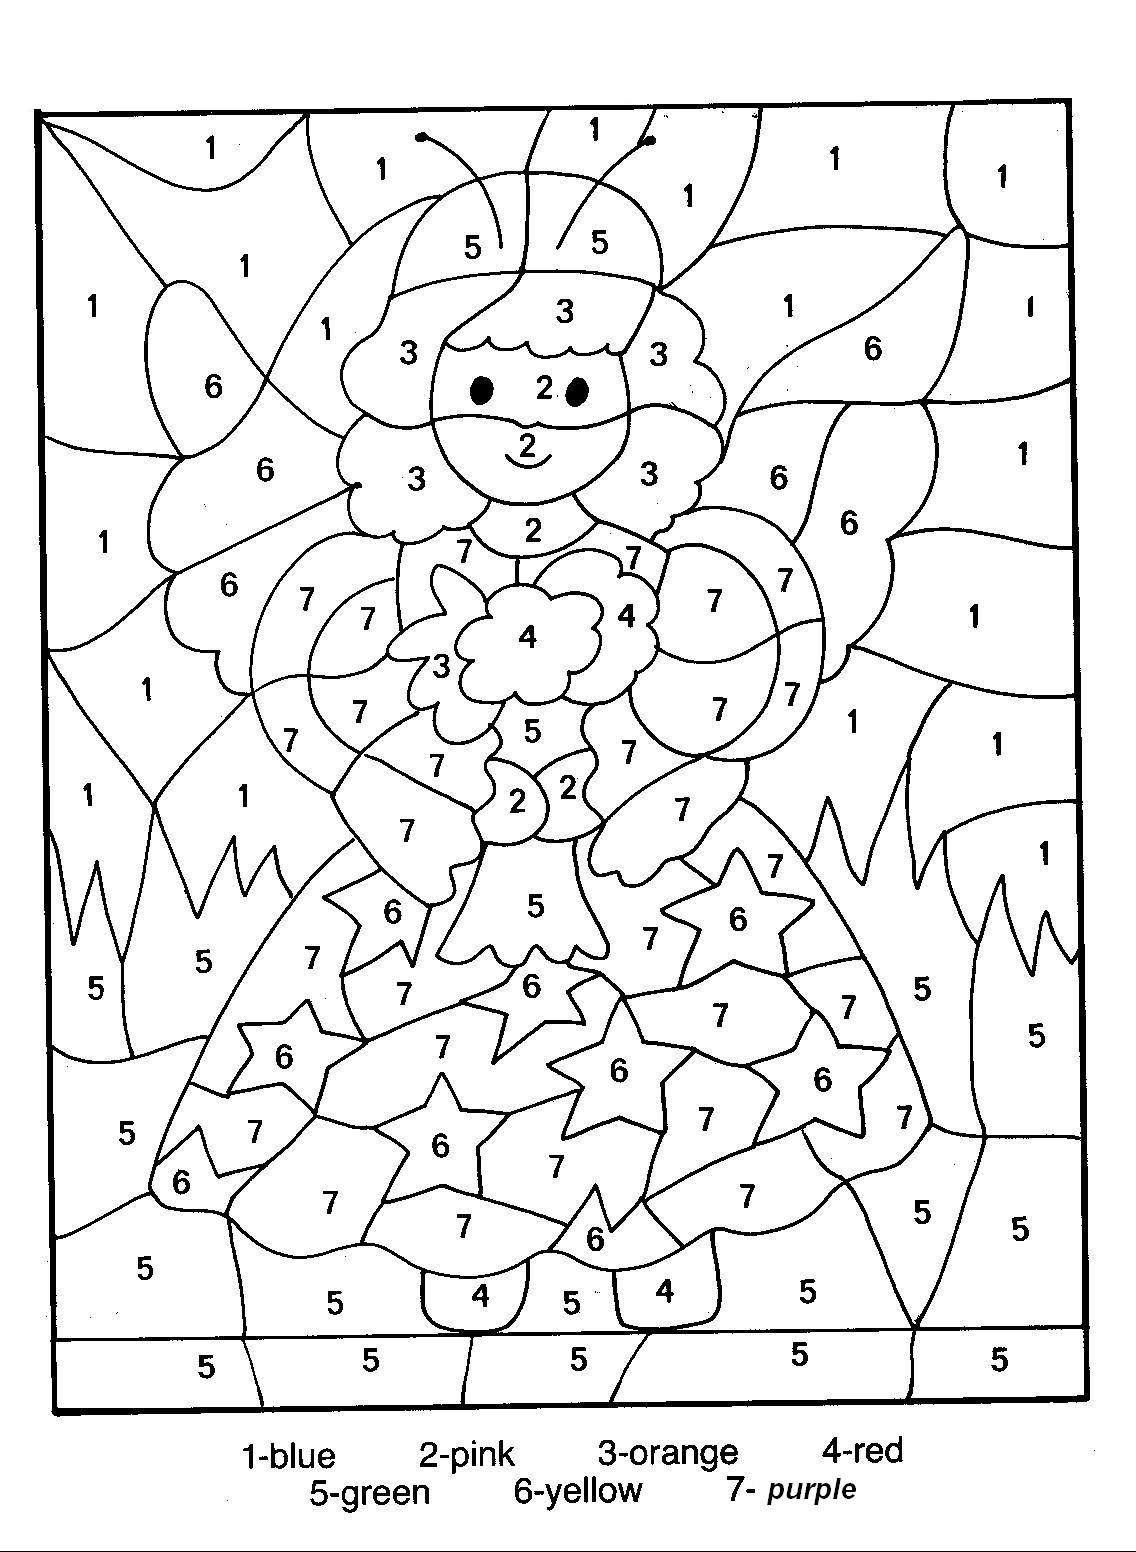 coloring with numbers printable color by number coloring pages to download and print for free coloring numbers printable with